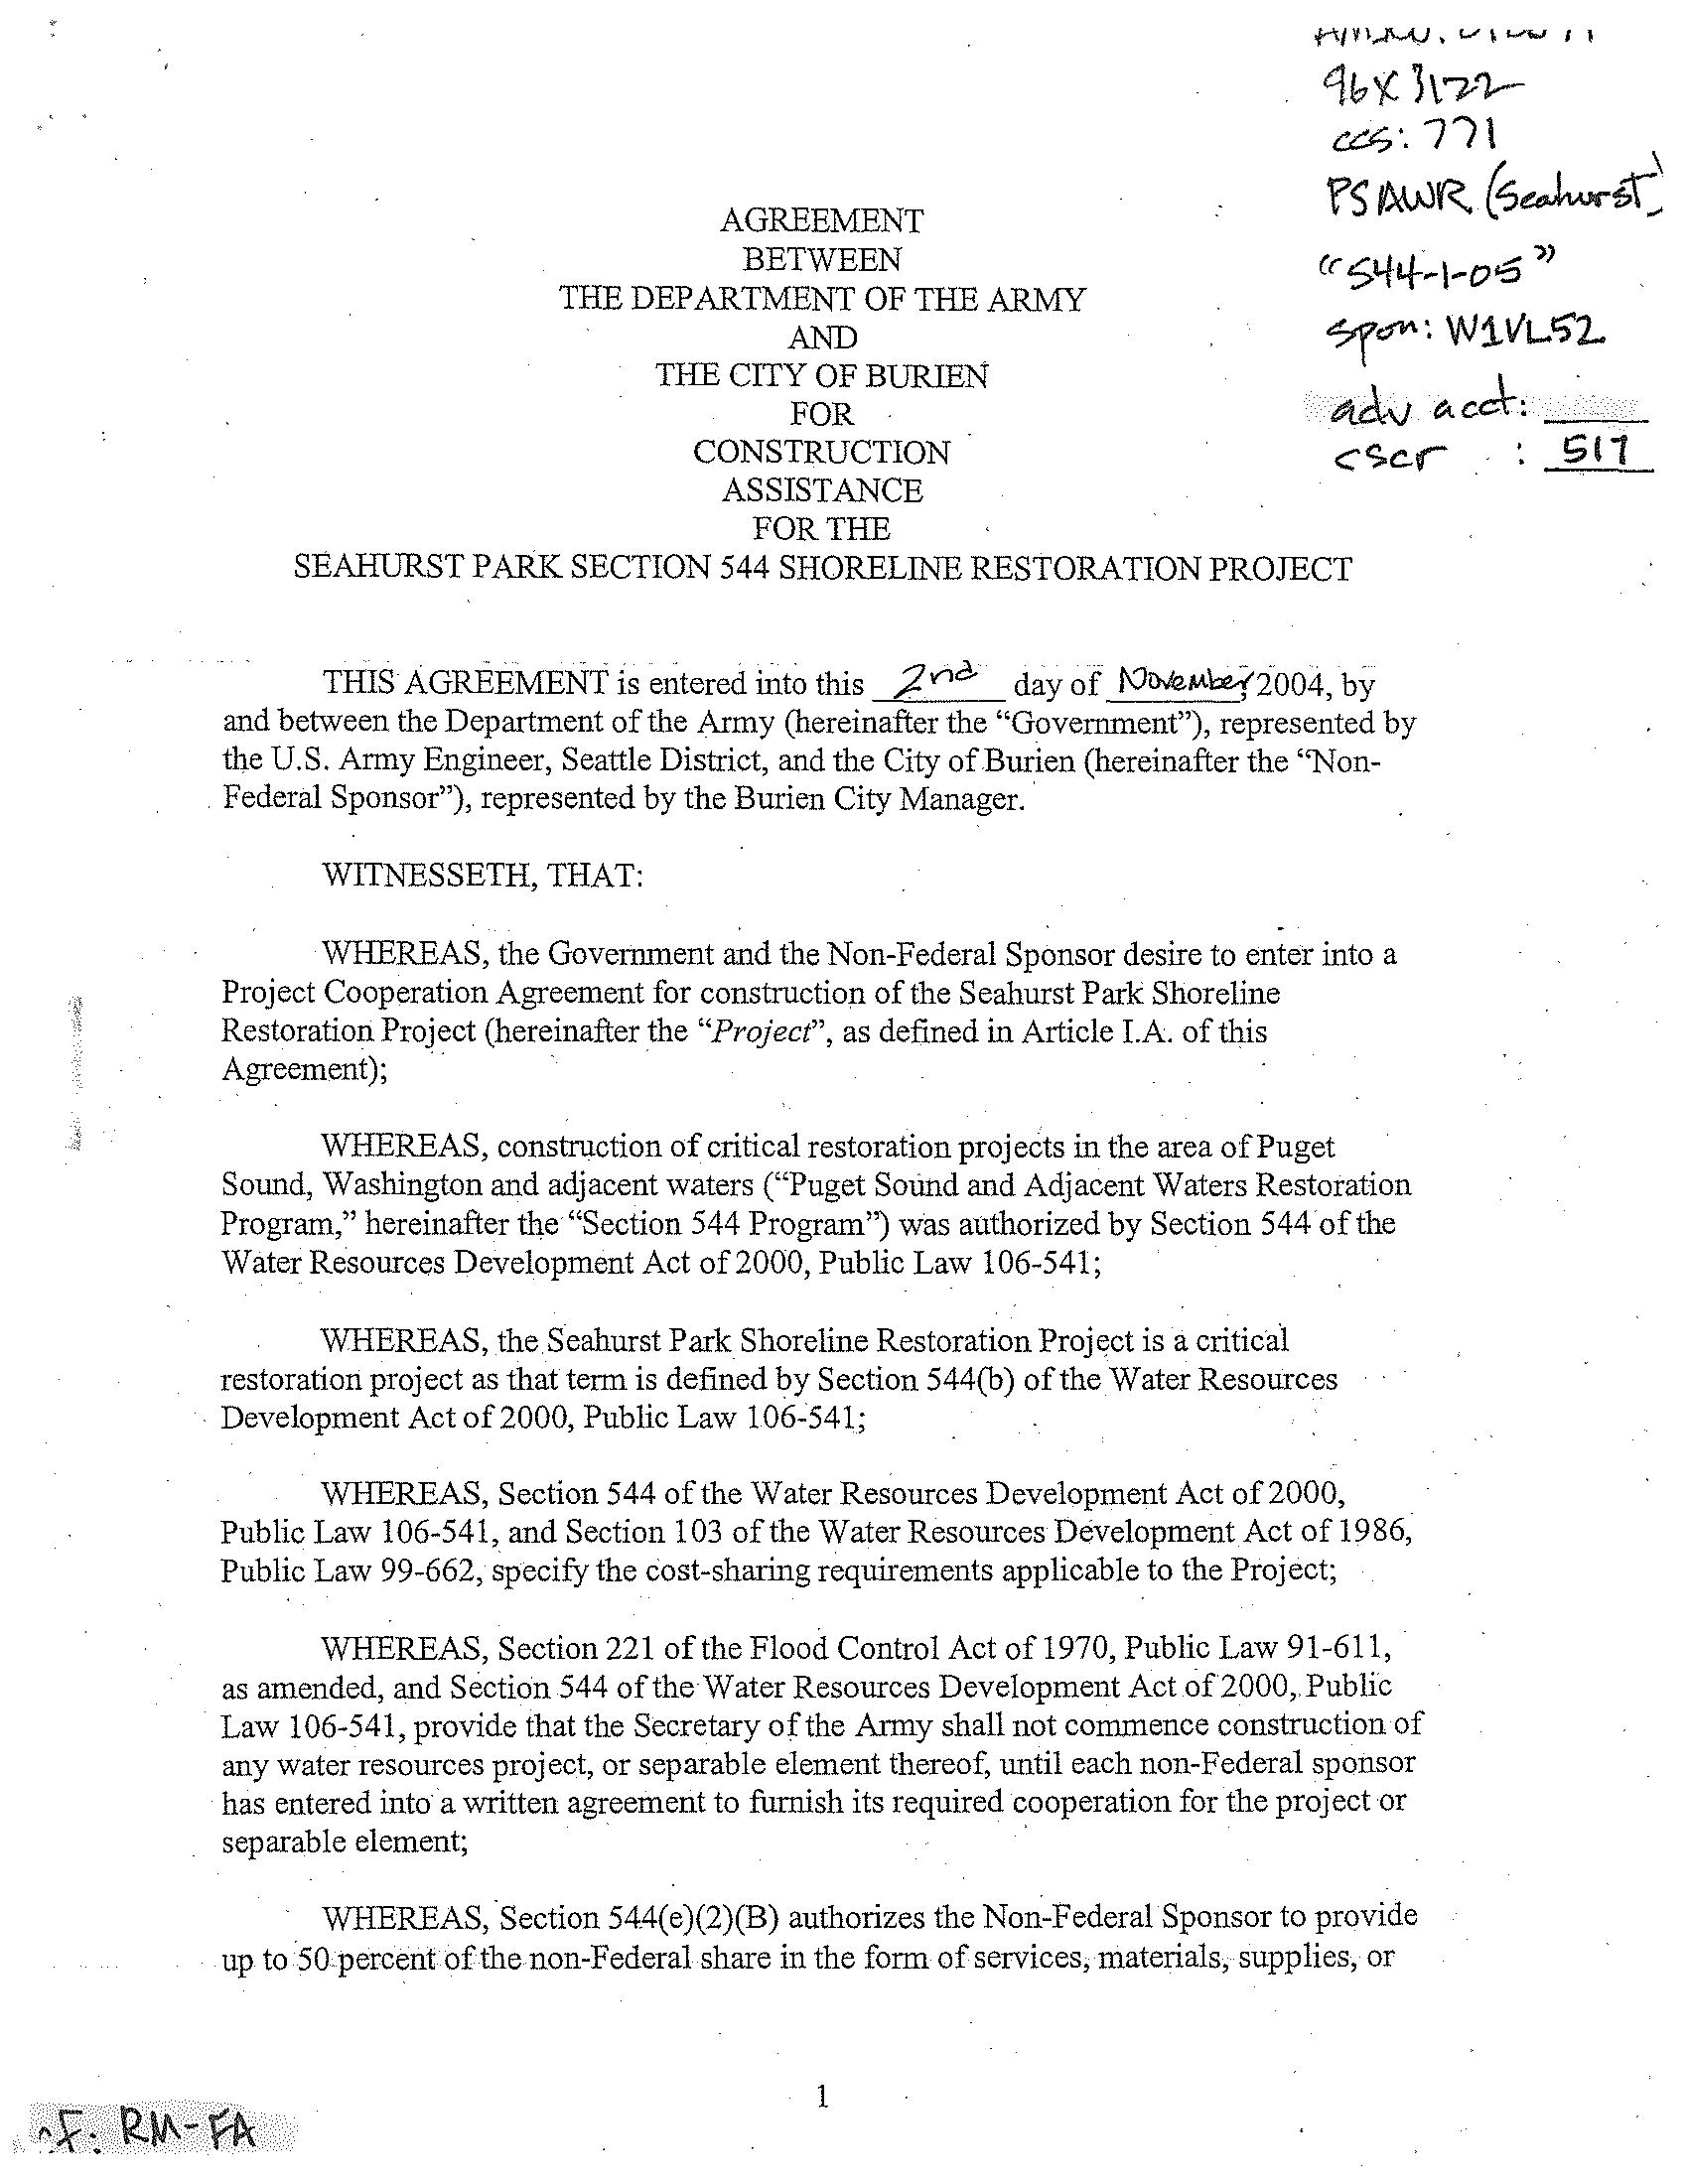 Agreement Between The Department Of The Army And The City Of Burien